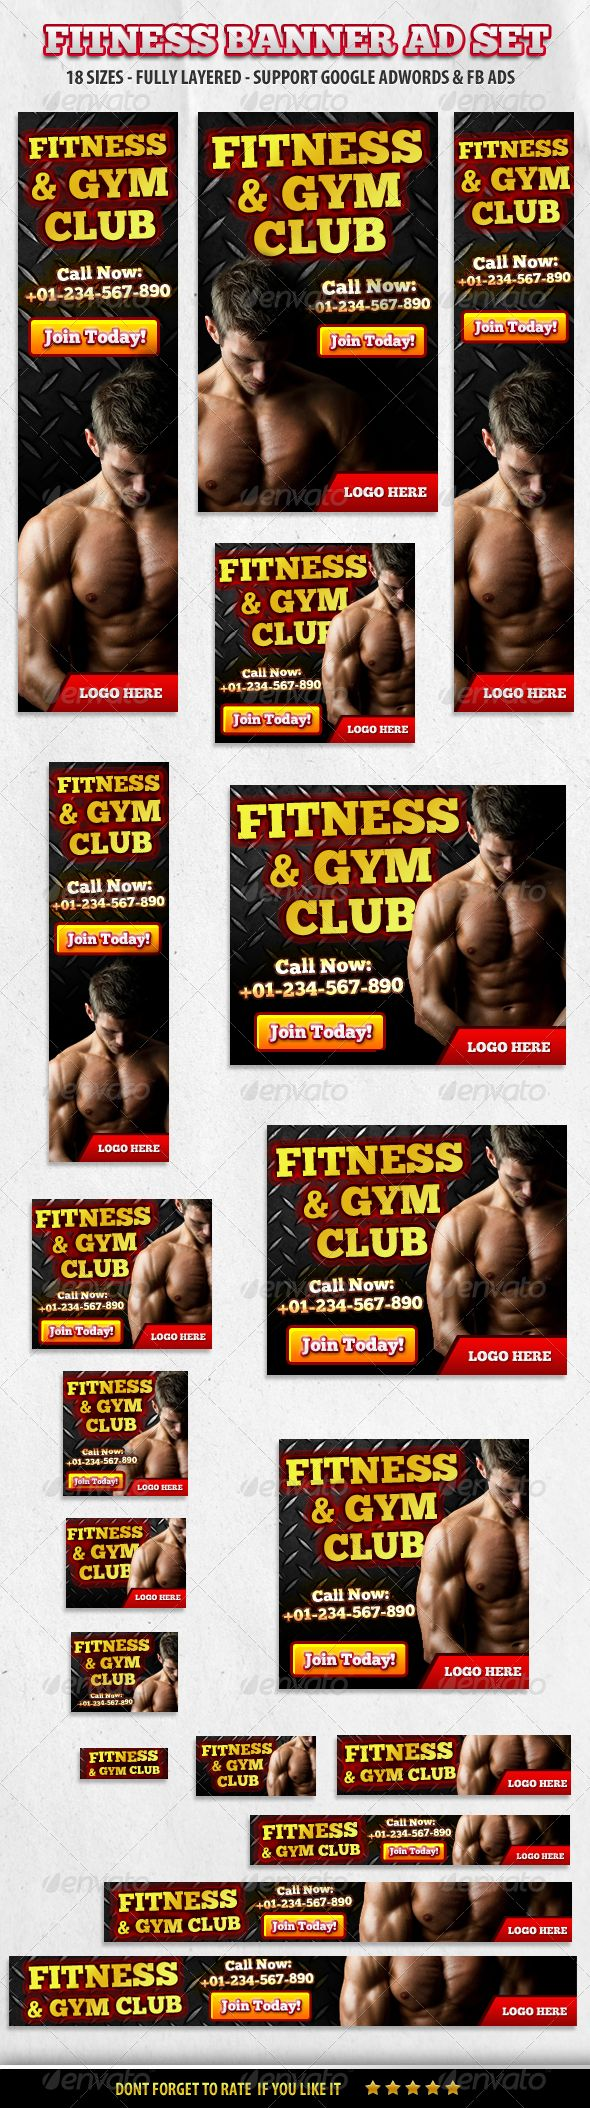 Fitness & Gym Club Banner ad Set Template PSD | Buy and Download: http://graphicriver.net/item/fitness-gym-club-banner-ad-set/5815731?WT.ac=category_thumb&WT.z_author=booharry&ref=ksioks